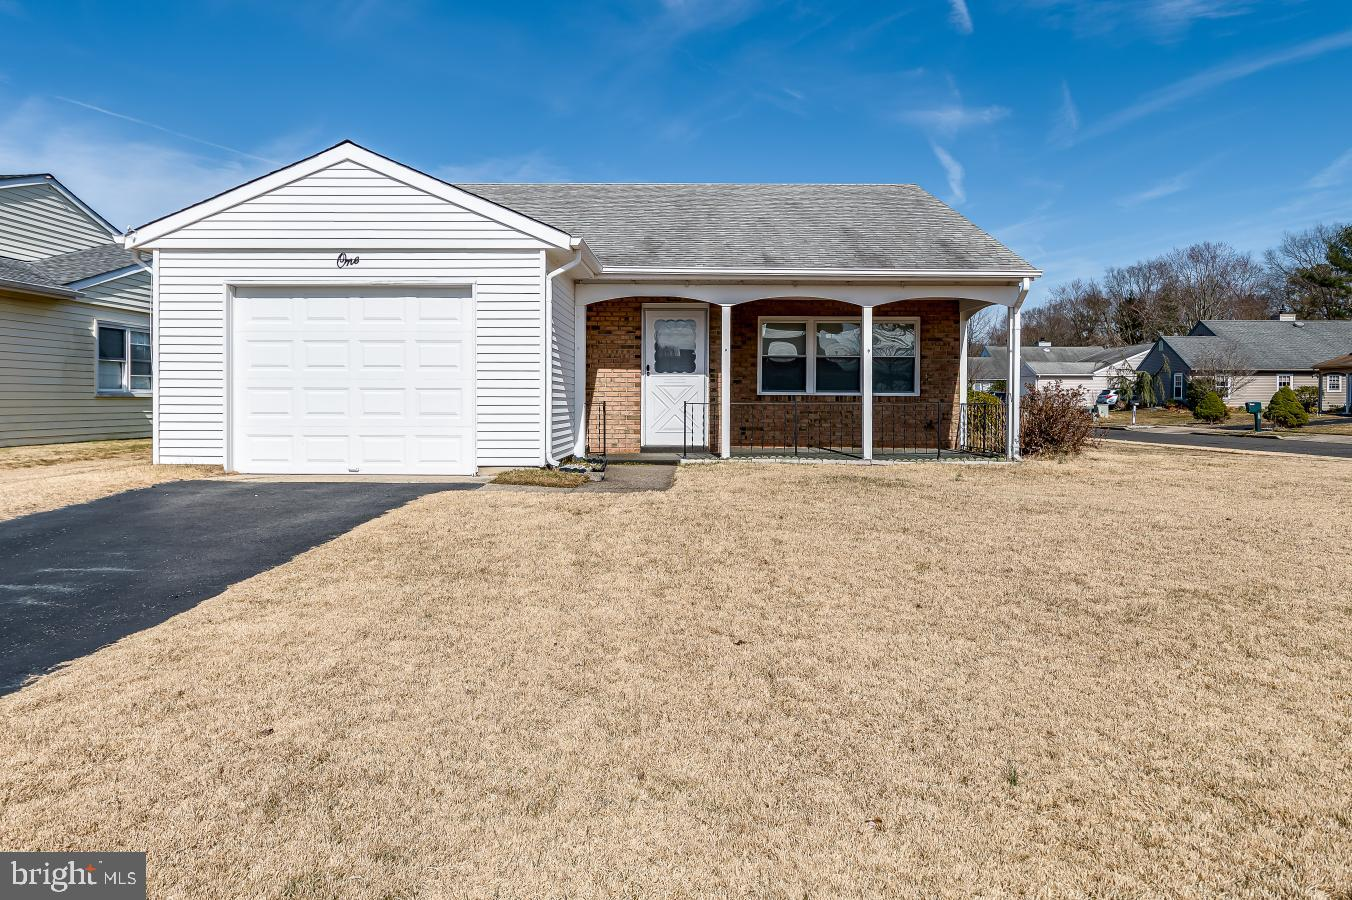 Perfect opportunity to own a little gem in Leisuretowne! This 2 bedroom, 1 Bathroom 1,055 sq. ft. Folcroft model  will make that perfect home with just enough space to be comfortable, yet completely manageable. Located on a beautiful corner lot with established low-growing Zoysia grass that is hardy and easy to maintain. It is also blank palette for all your landscaping ideas. Home has been well-cared for and features updated, efficient heating elements. The eat-in kitchen is bright and airy and has a pass-through into the living room so the rooms are open enough for entertaining, yet offers that little bit of separation. Both Bedrooms are nicely sized. The Bathroom is extraordinarily bright natural light. Garage has pull-down stairs to the attic. Covered front porch has is enclosed by a wrought iron railing. Back storage shed offers plenty of additional storage for outdoor tools and supplies. Home inspection will be conducted in lieu of property disclosure. Termite/wood boring insect inspection will also occur within the week.  Home is being Sold in AS IN condition  - Sprinkler System is also being sold As-Is.